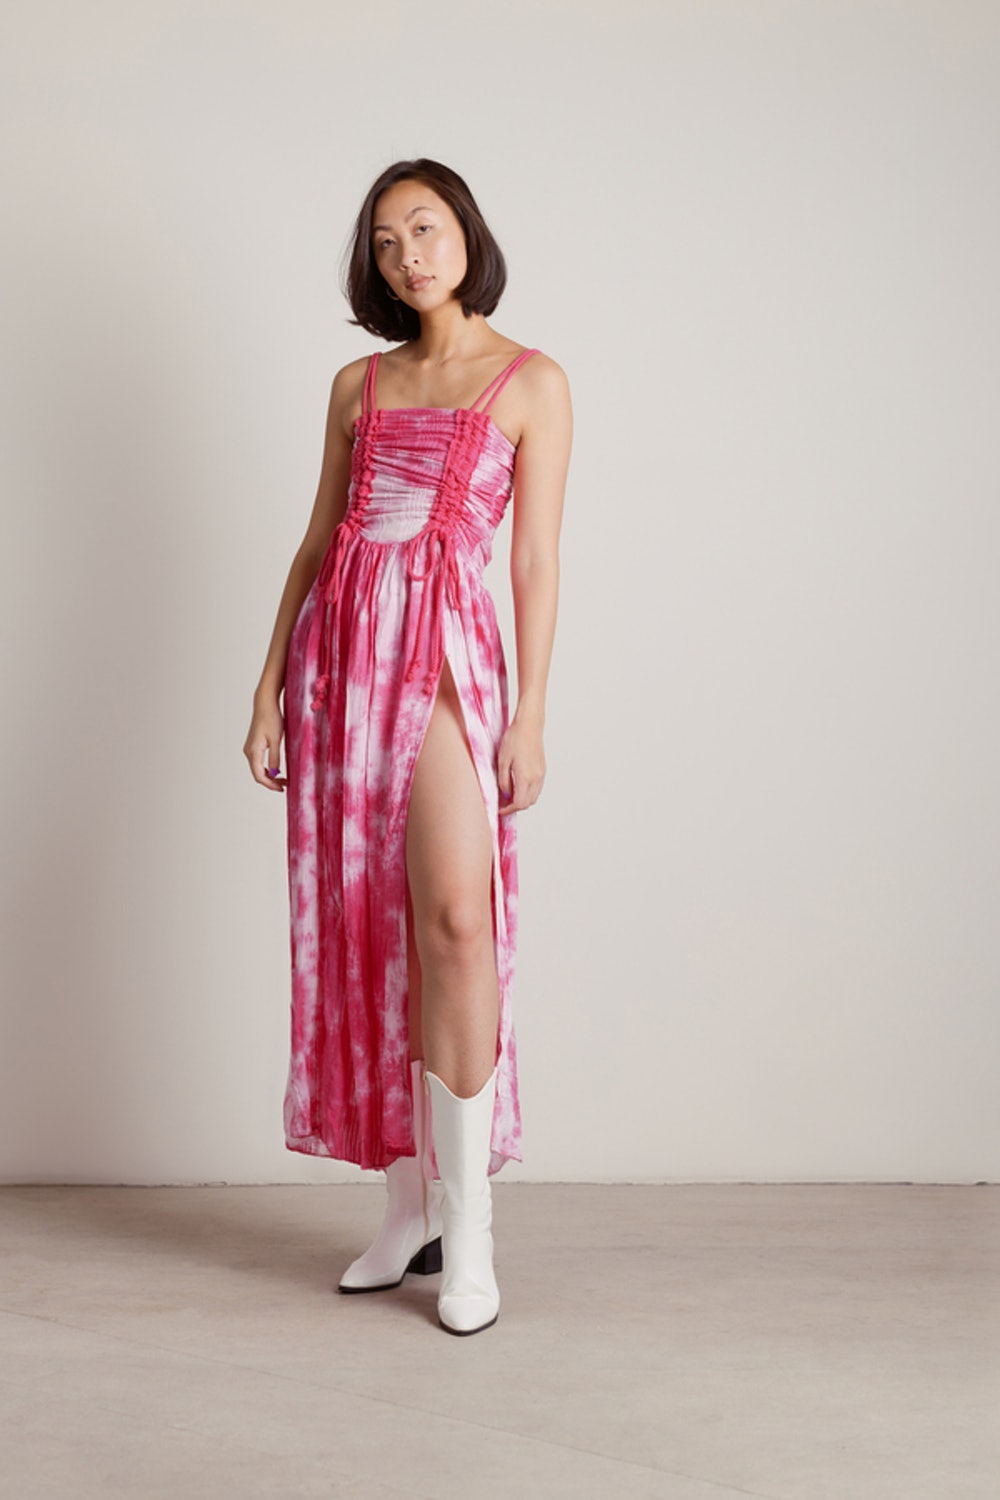 Give Me Attention Tie-Dye Ruched Slit Maxi Dress in Pink